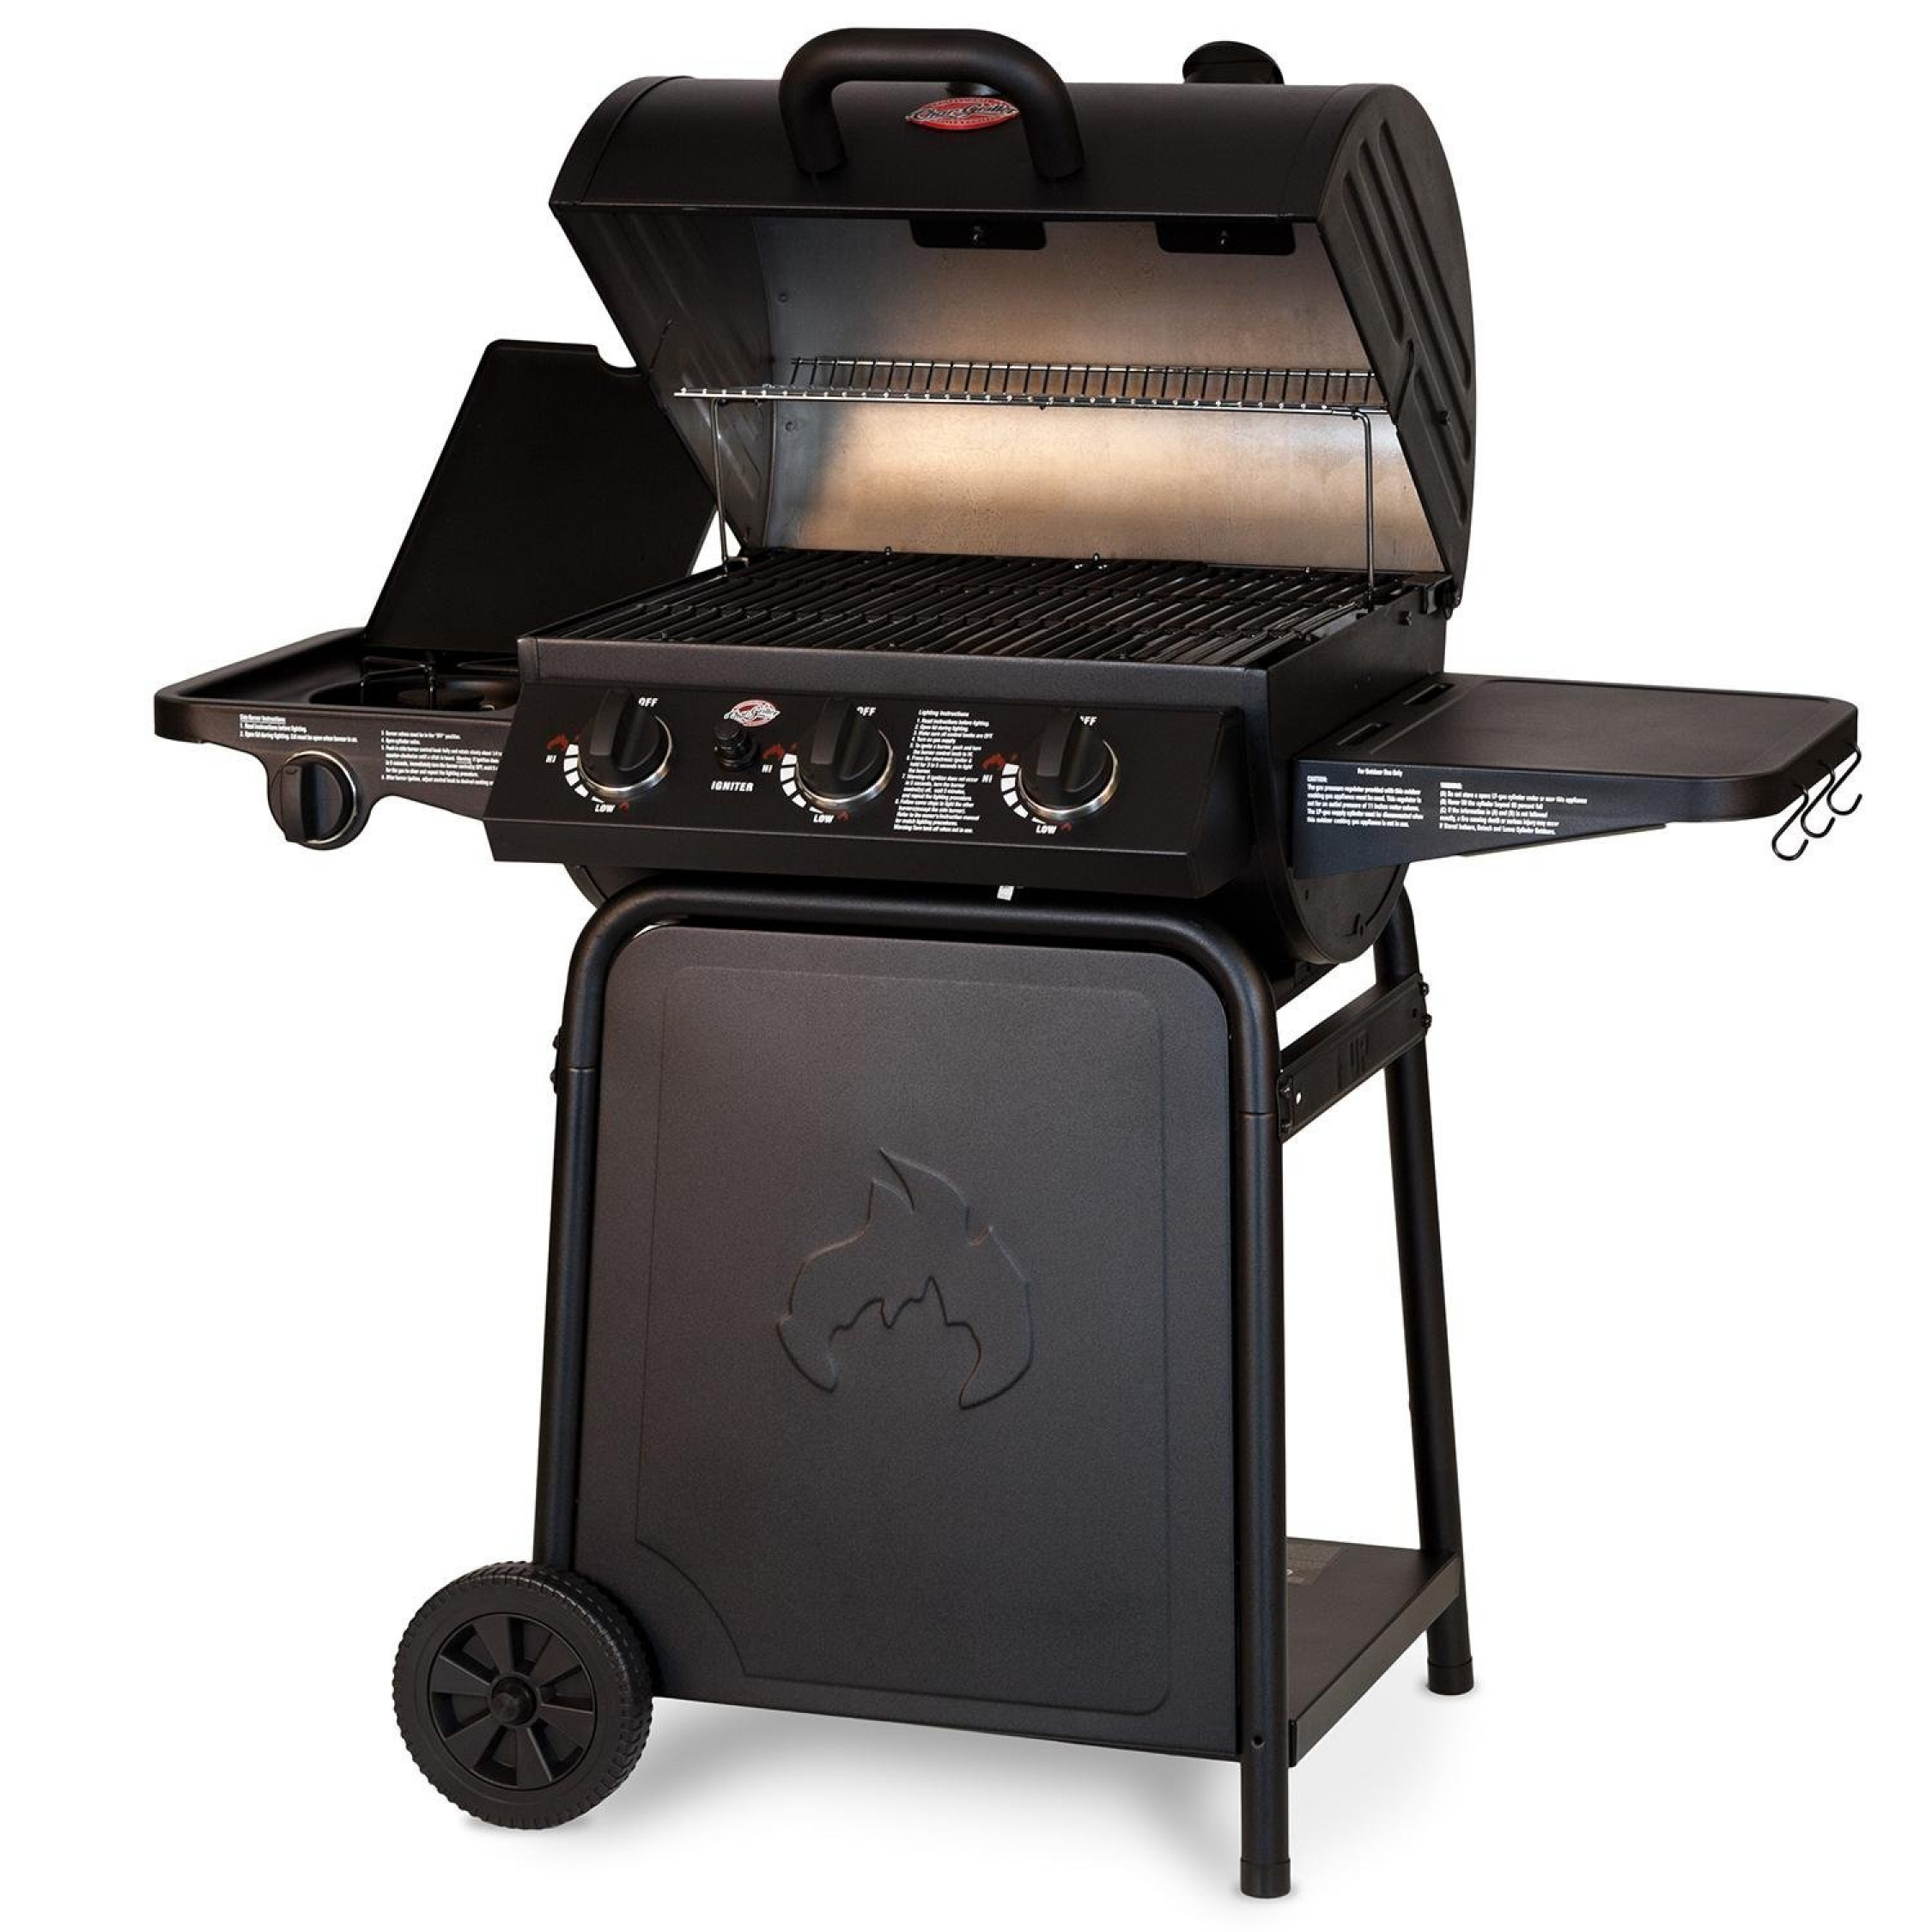 gas grill w side shelf workspace electronic ignition cooking bbq barbecue smoker ebay. Black Bedroom Furniture Sets. Home Design Ideas